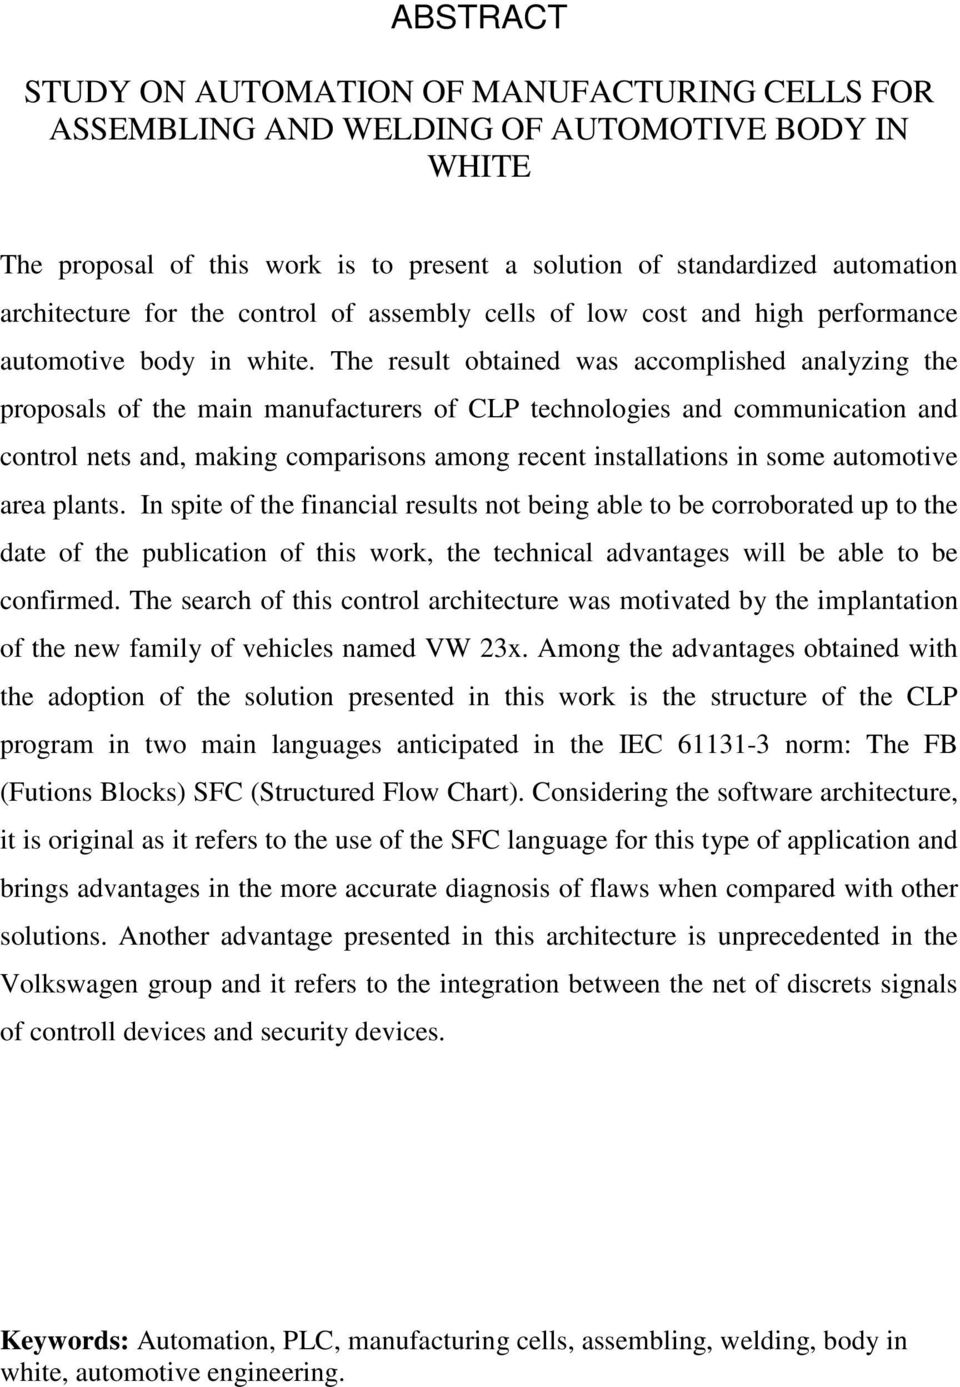 The result obtained was accomplished analyzing the proposals of the main manufacturers of CLP technologies and communication and control nets and, making comparisons among recent installations in